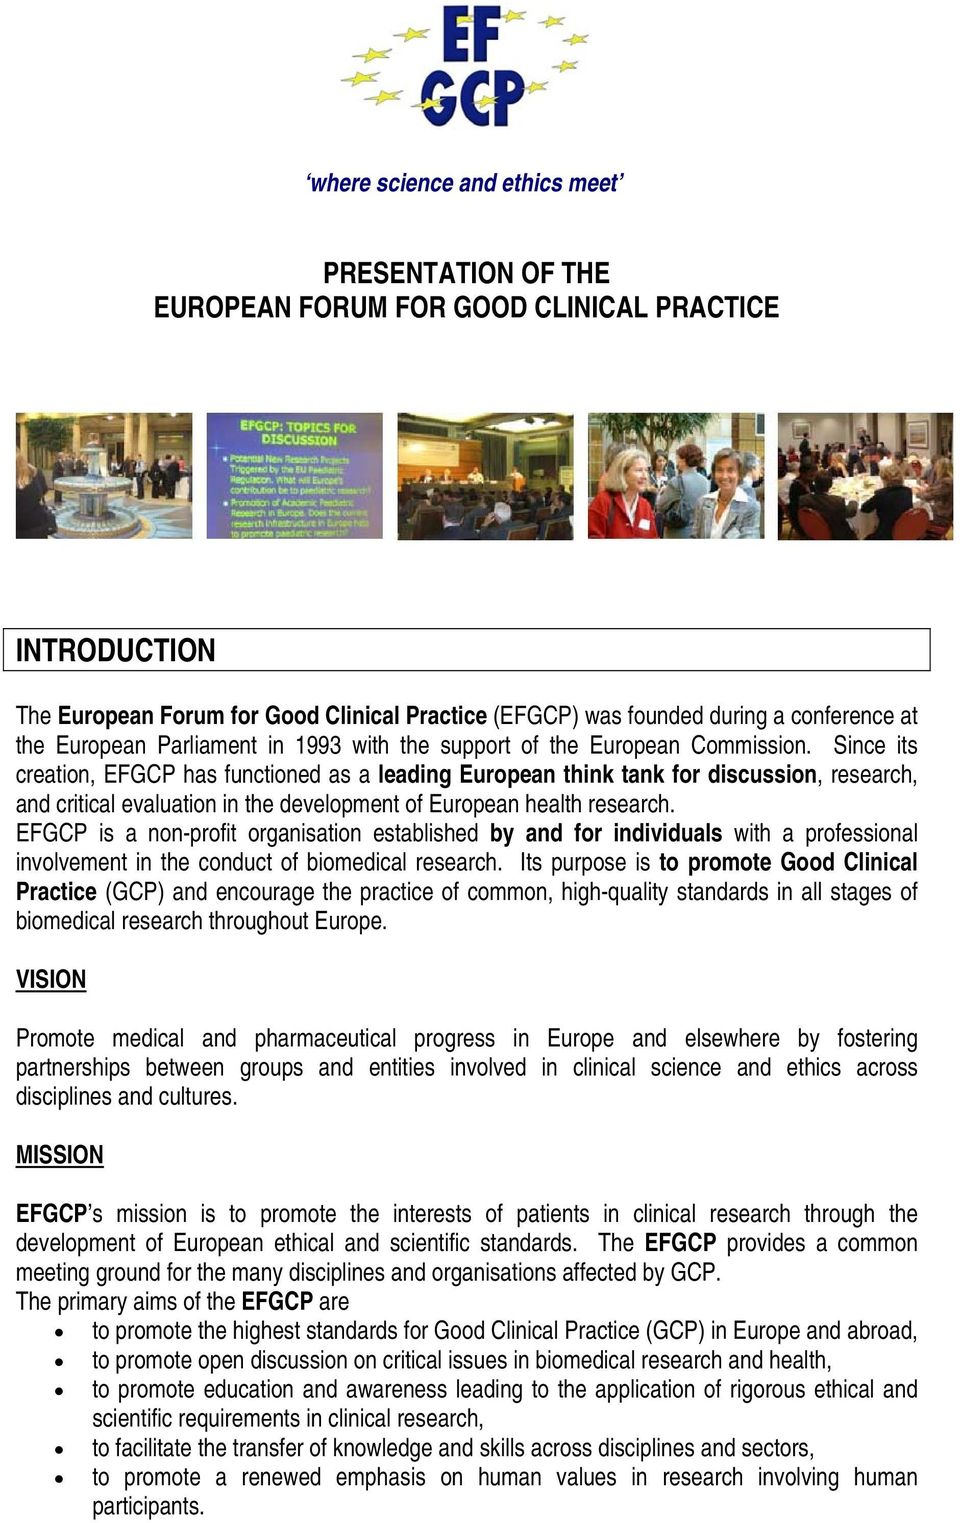 Since its creation, EFGCP has functioned as a leading European think tank for discussion, research, and critical evaluation in the development of European health research.